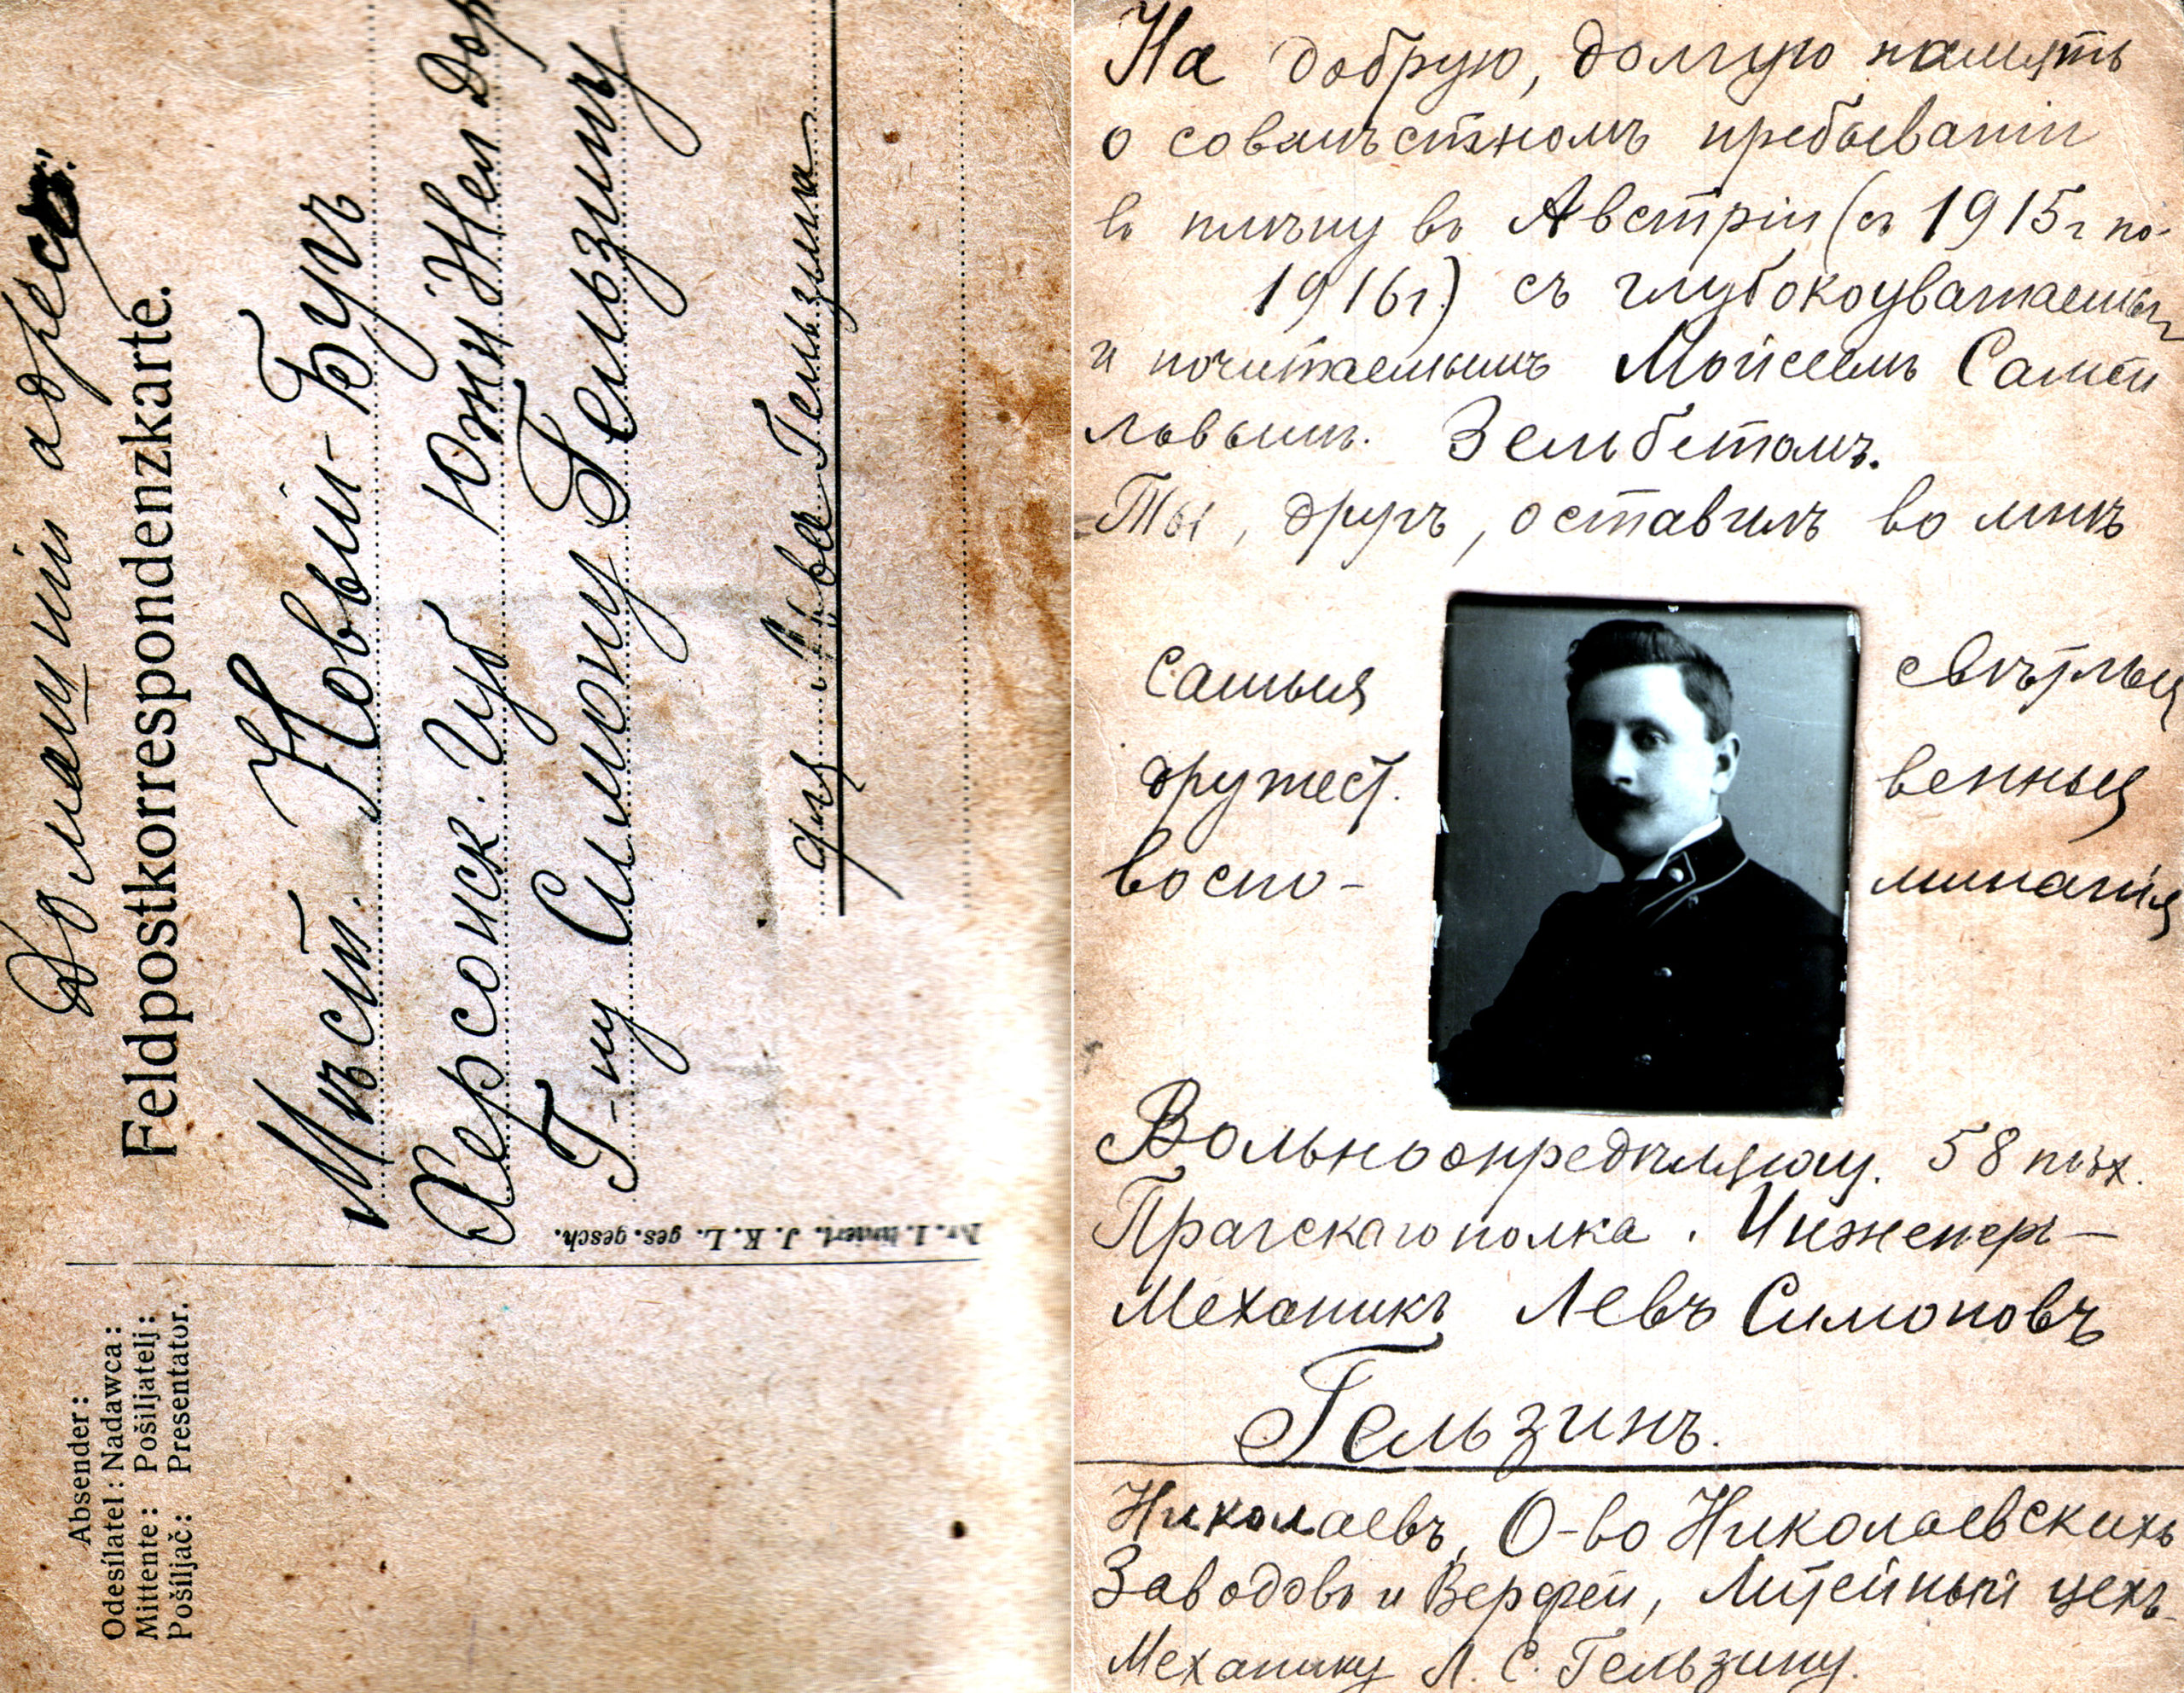 The post card, sent to Moses Zelbert by his friend Lev Gelzin